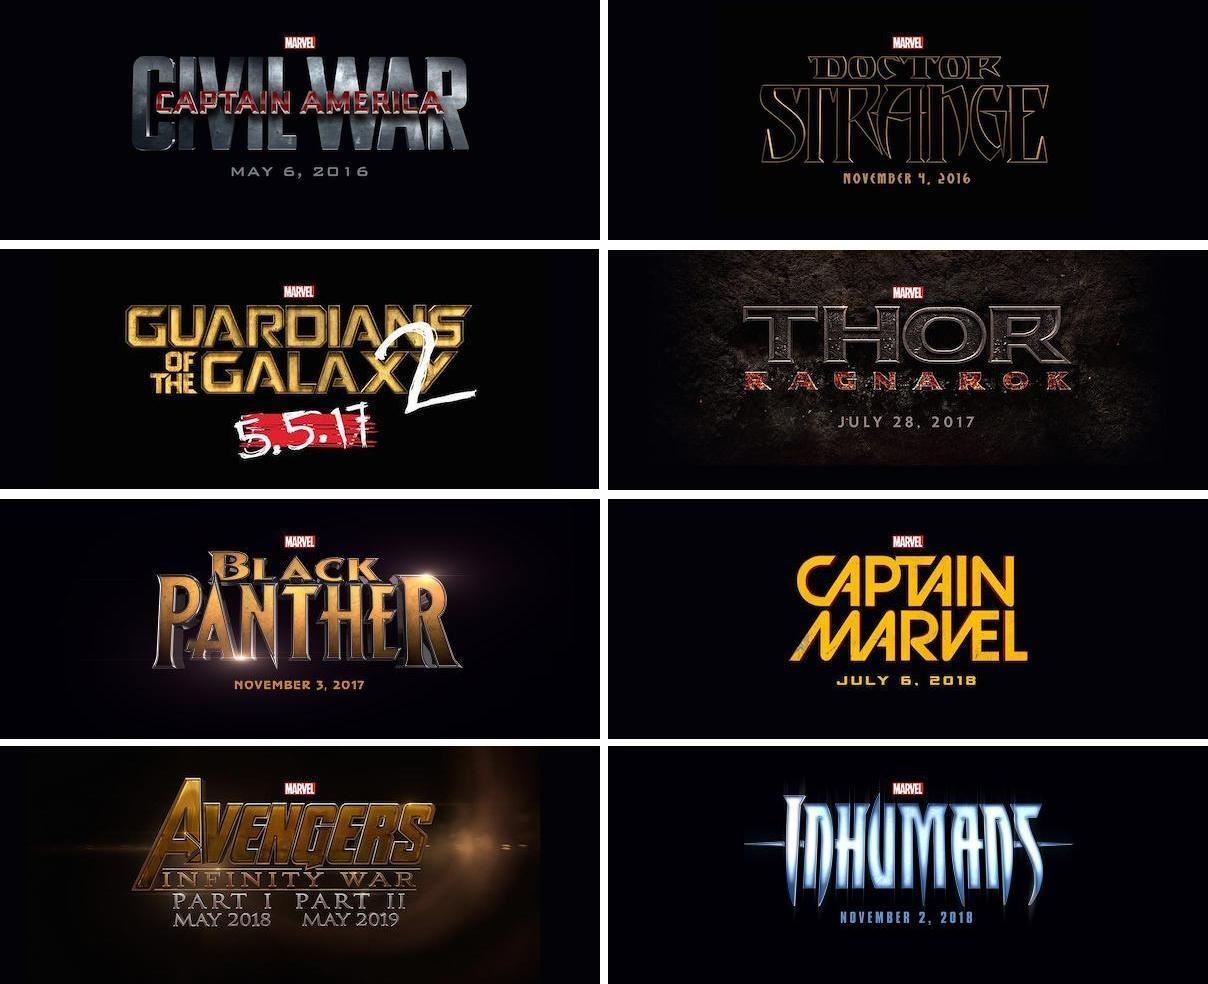 marvel film releases